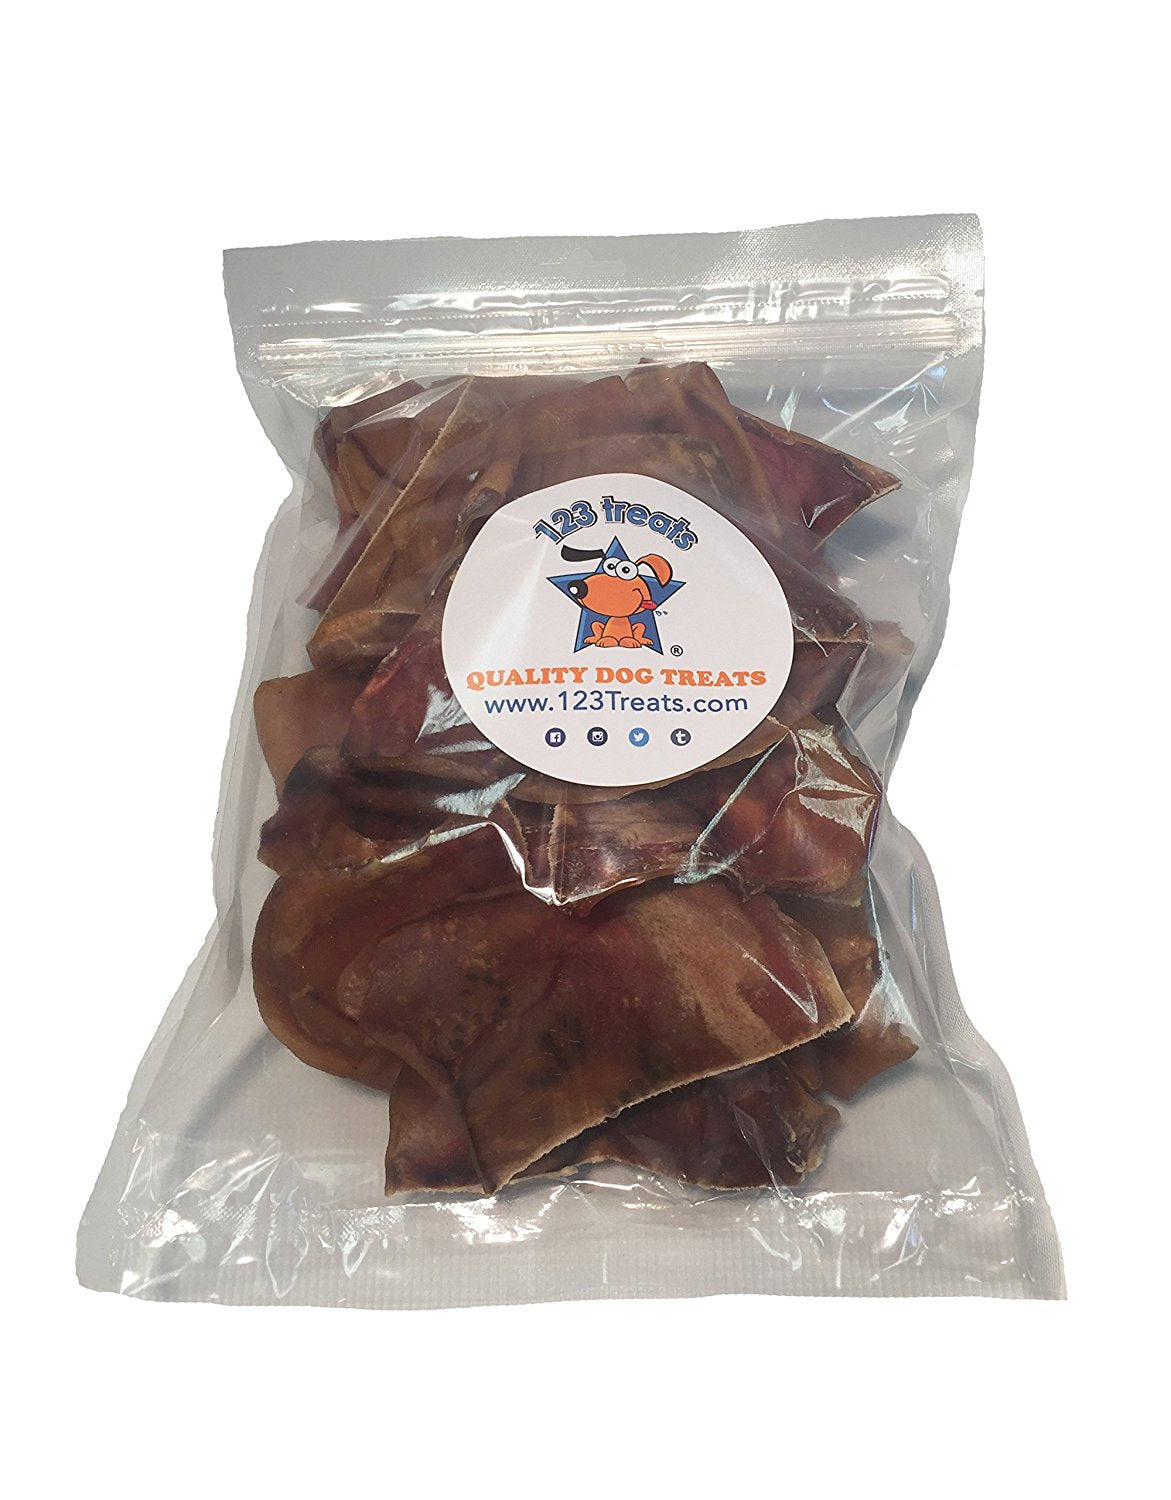 Mini Pig Ears Chews 30, 50, 100 or 200 Count | Healthy dog treats - Cut Pork Ear for dogs | 100% Natural USDA Approved Chews from 123 Treats